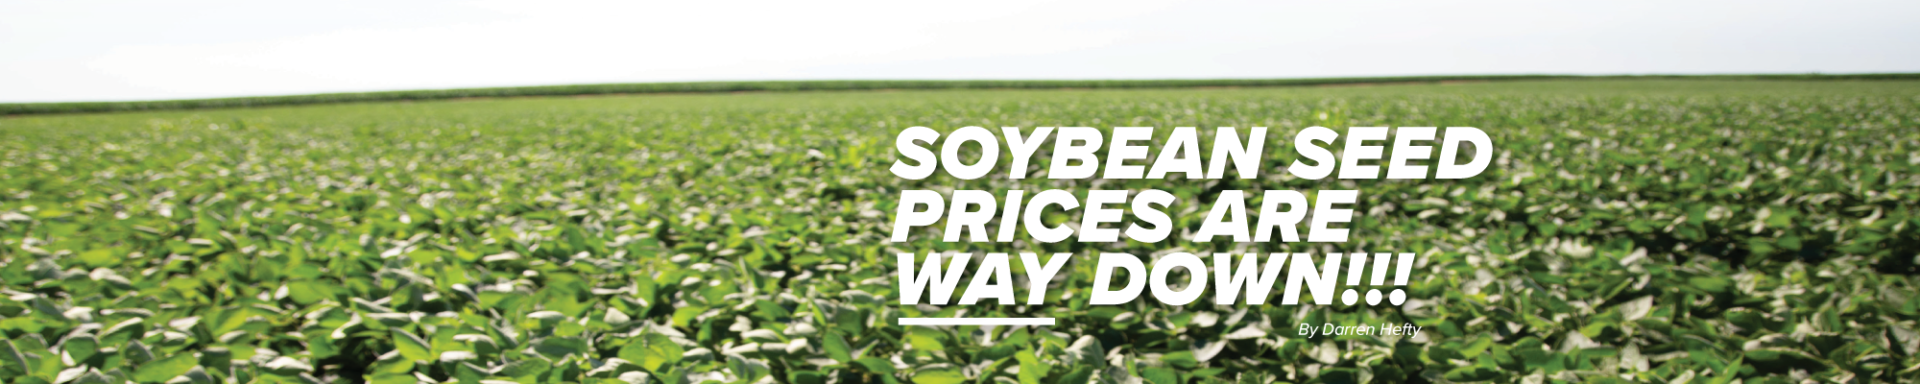 Soybean Seed Prices are Way Down magazine article header image.